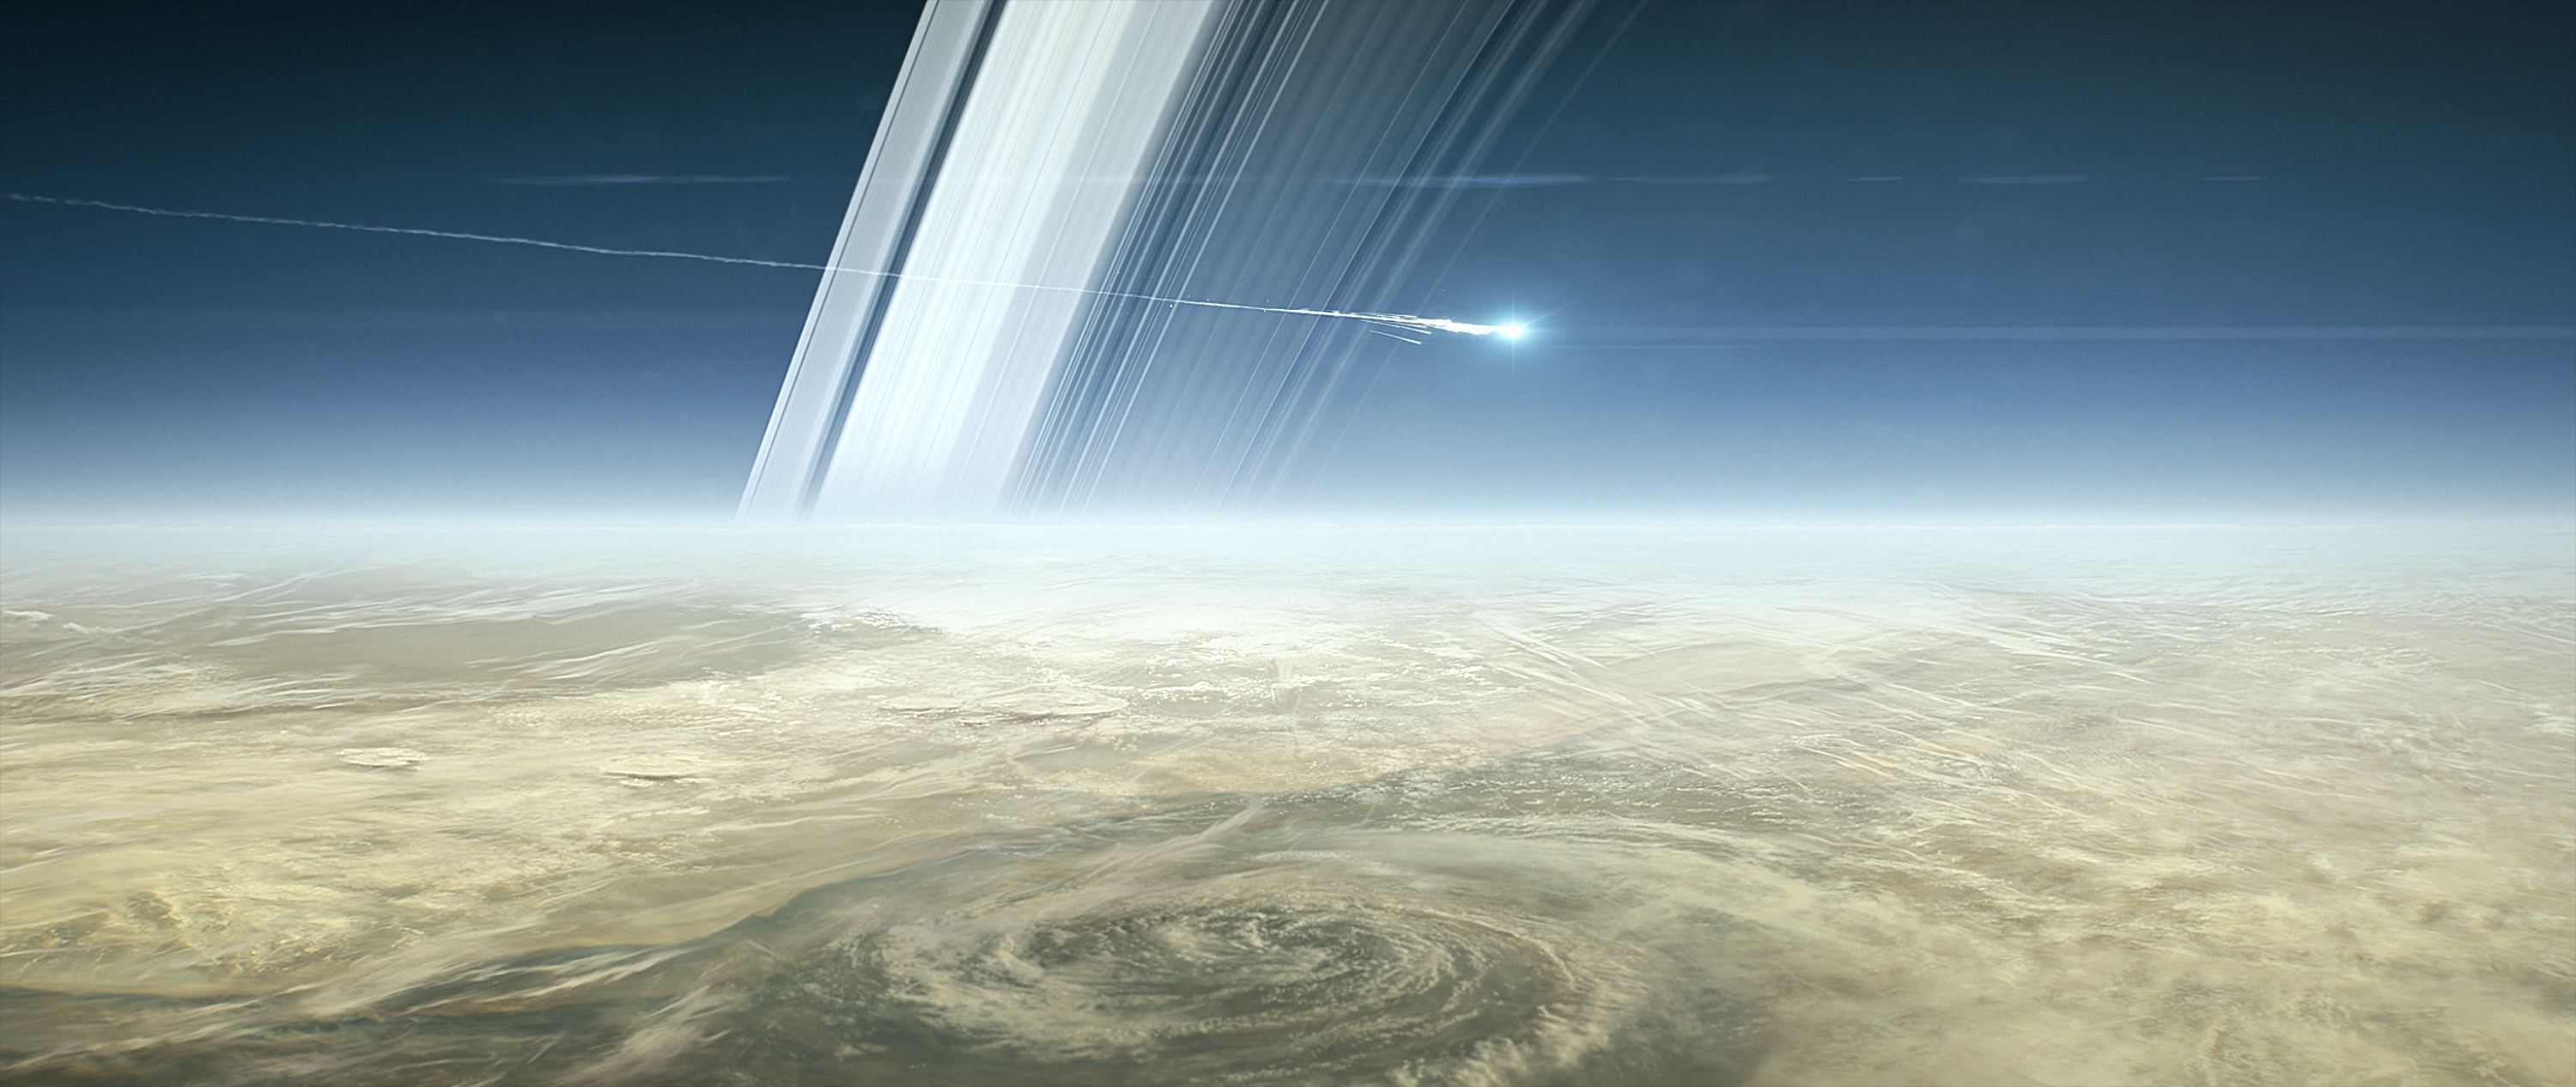 The Cassini spacecraft's dive in between Saturn's rings, explained